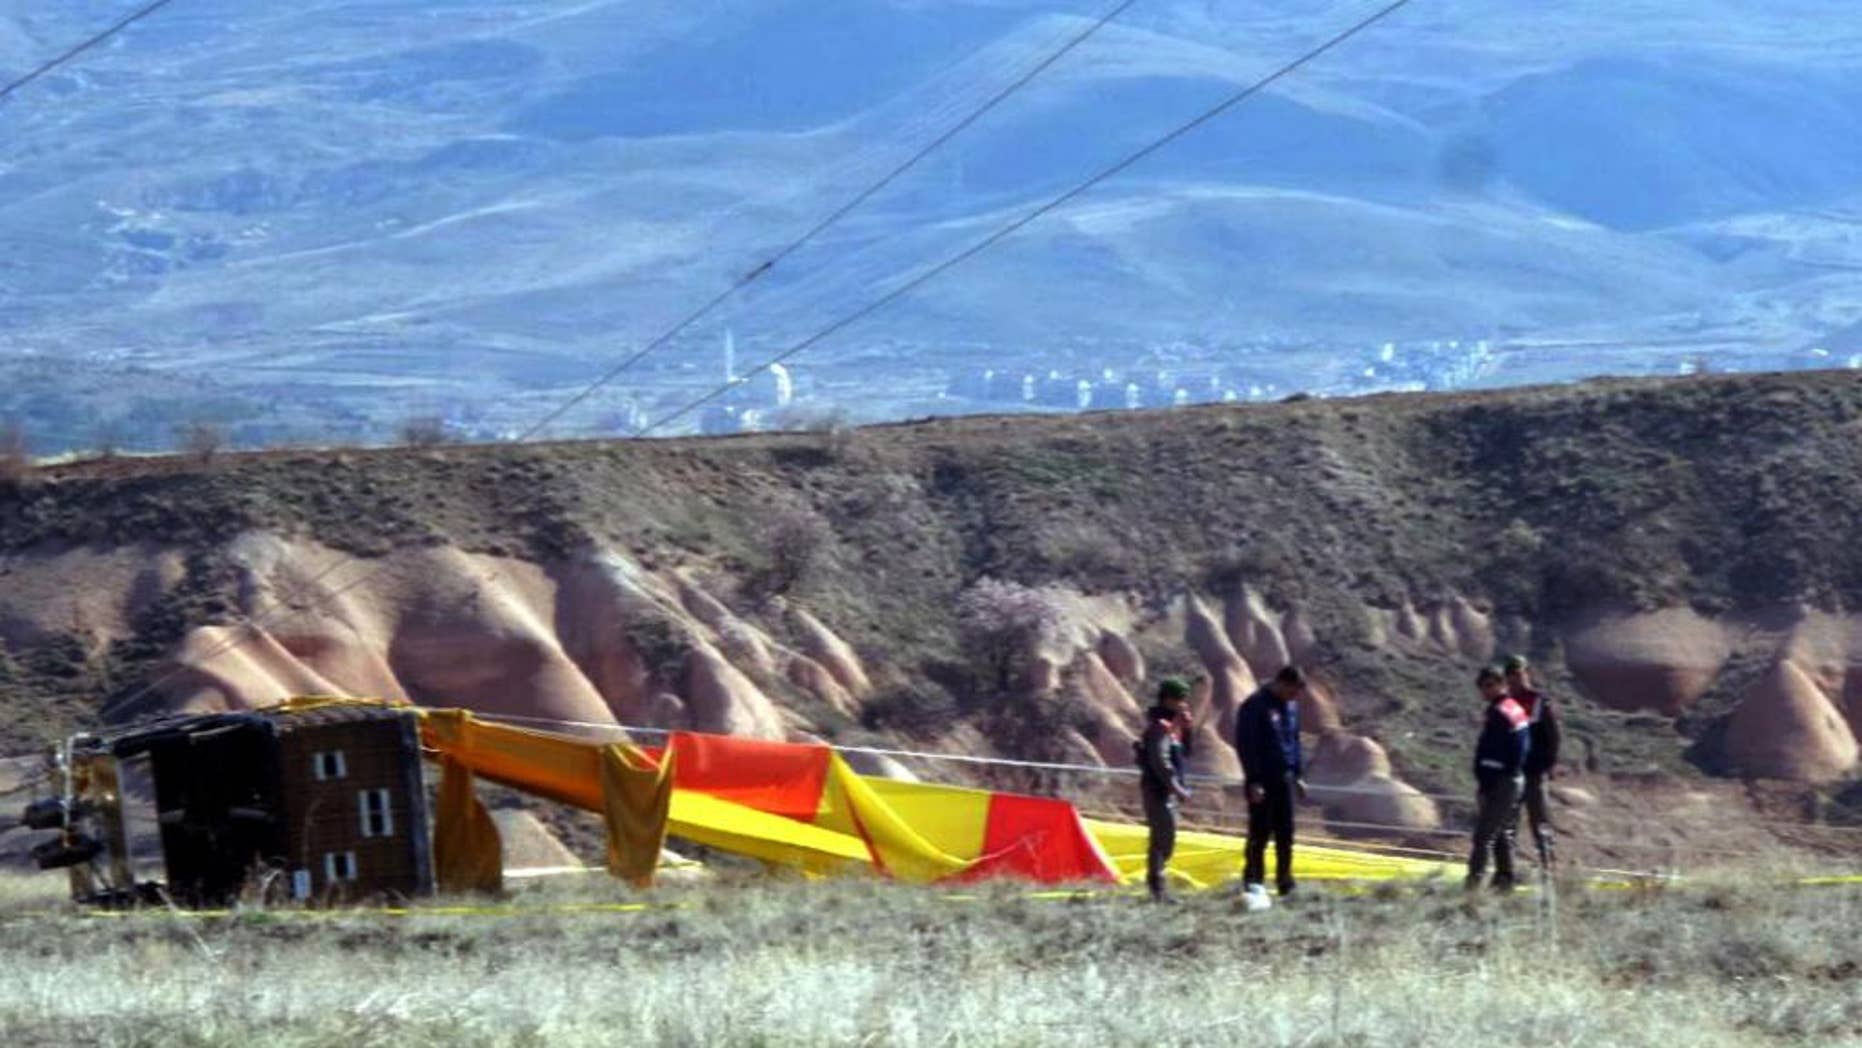 Security members investigate at the site after a hot air balloon hit a high-voltage transmission line and crashed near Cappadocia, a popular tourist destination in central Turkey, Sunday, April 9, 2017.